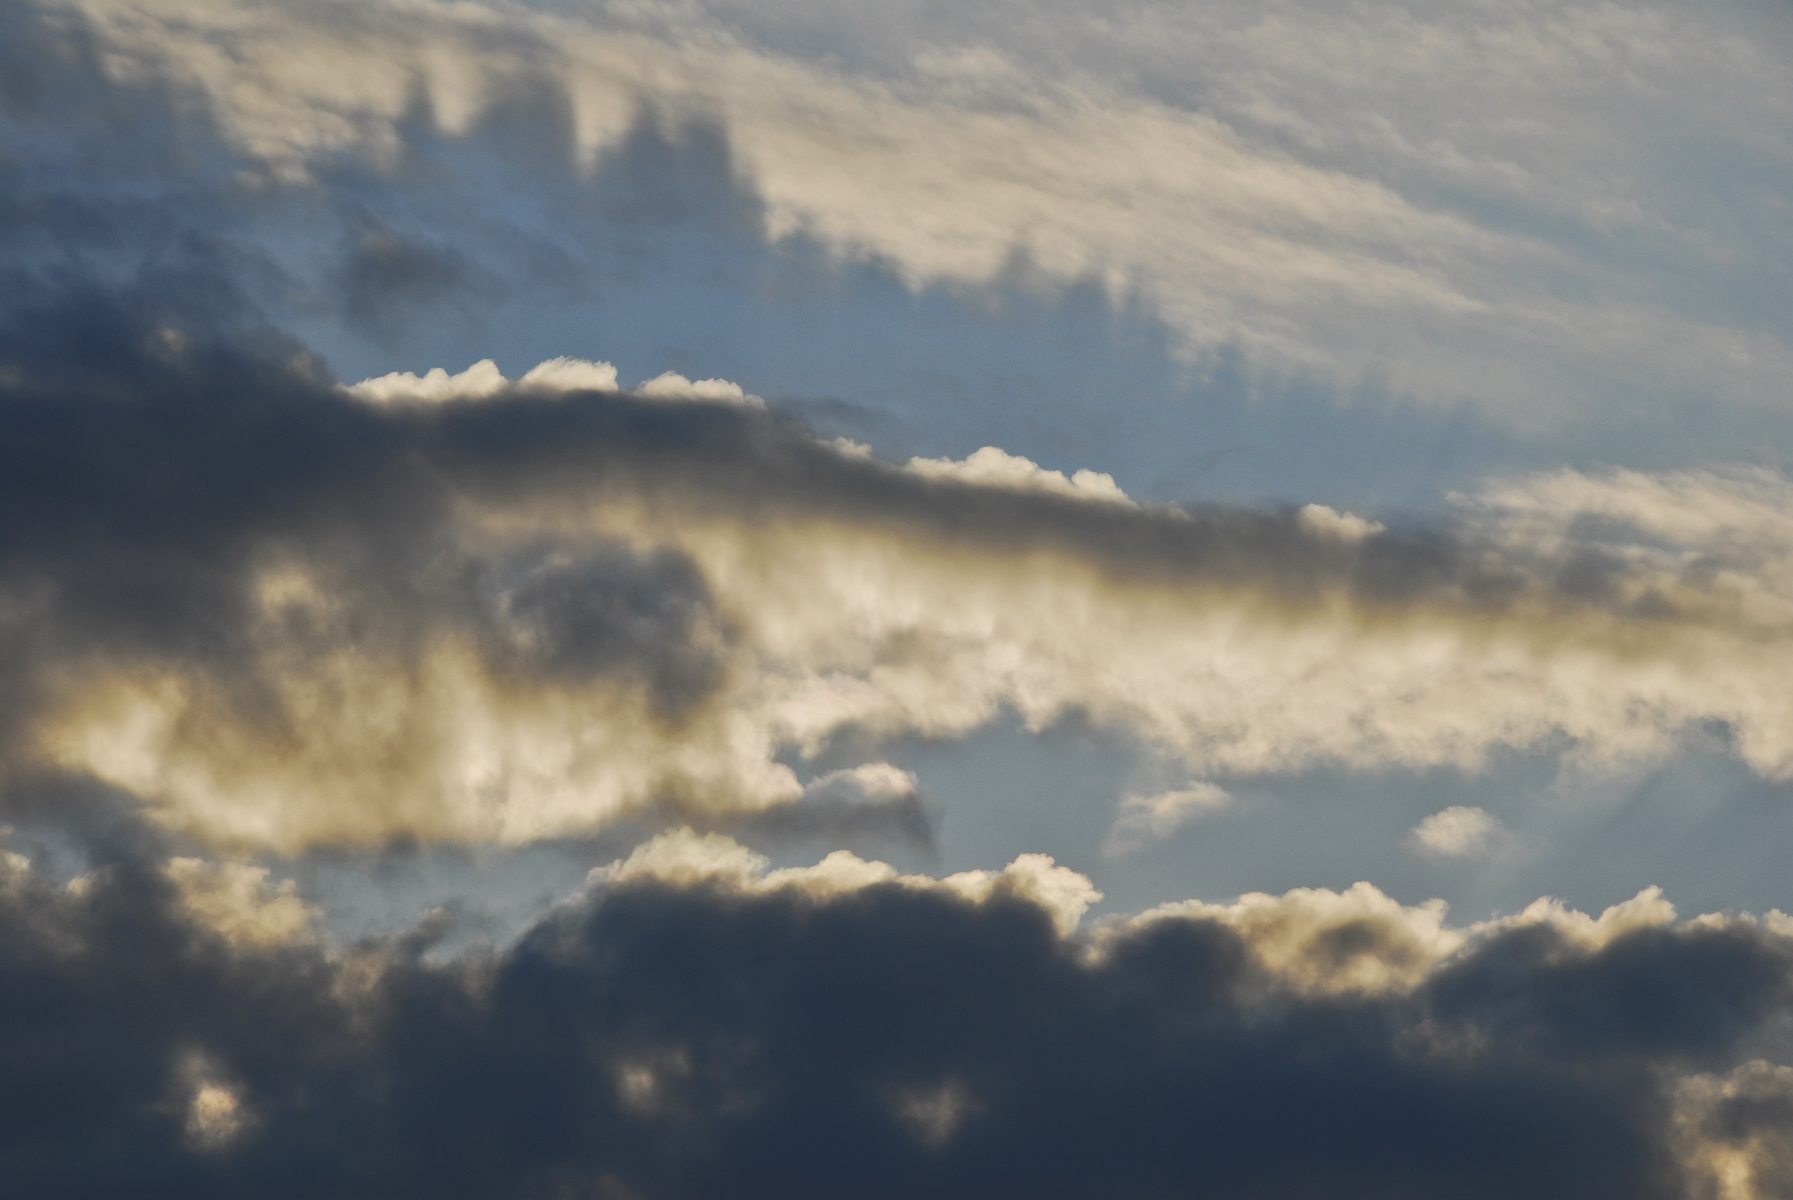 Early Morning Rain Clouds (Image 1 of 7), Billowing, Blowing, Bspo06, Cloud, HQ Photo